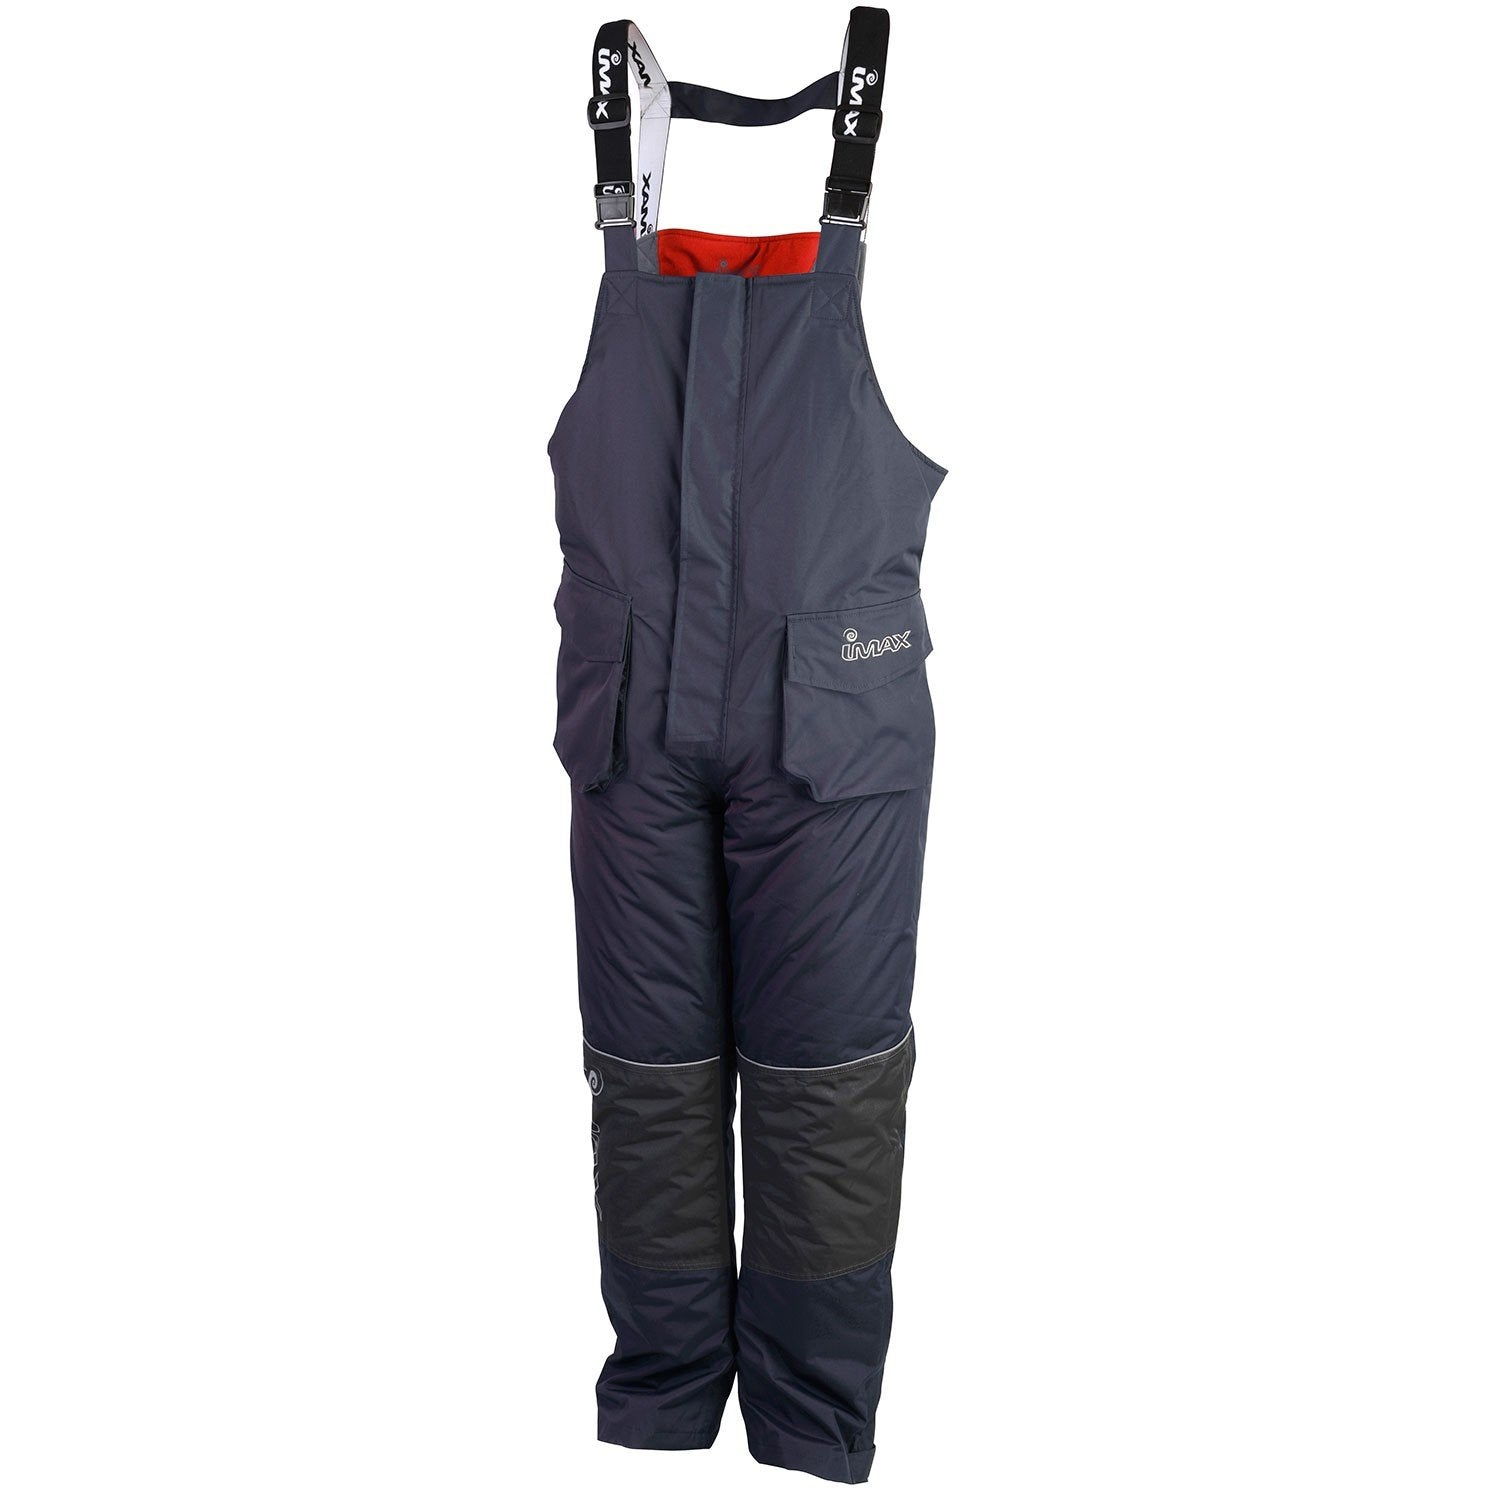 IMAX ARX-20 Ice Thermo Suit - Massive Saving RRP £139.99 Our Price £93.99!!! - reid outdoors